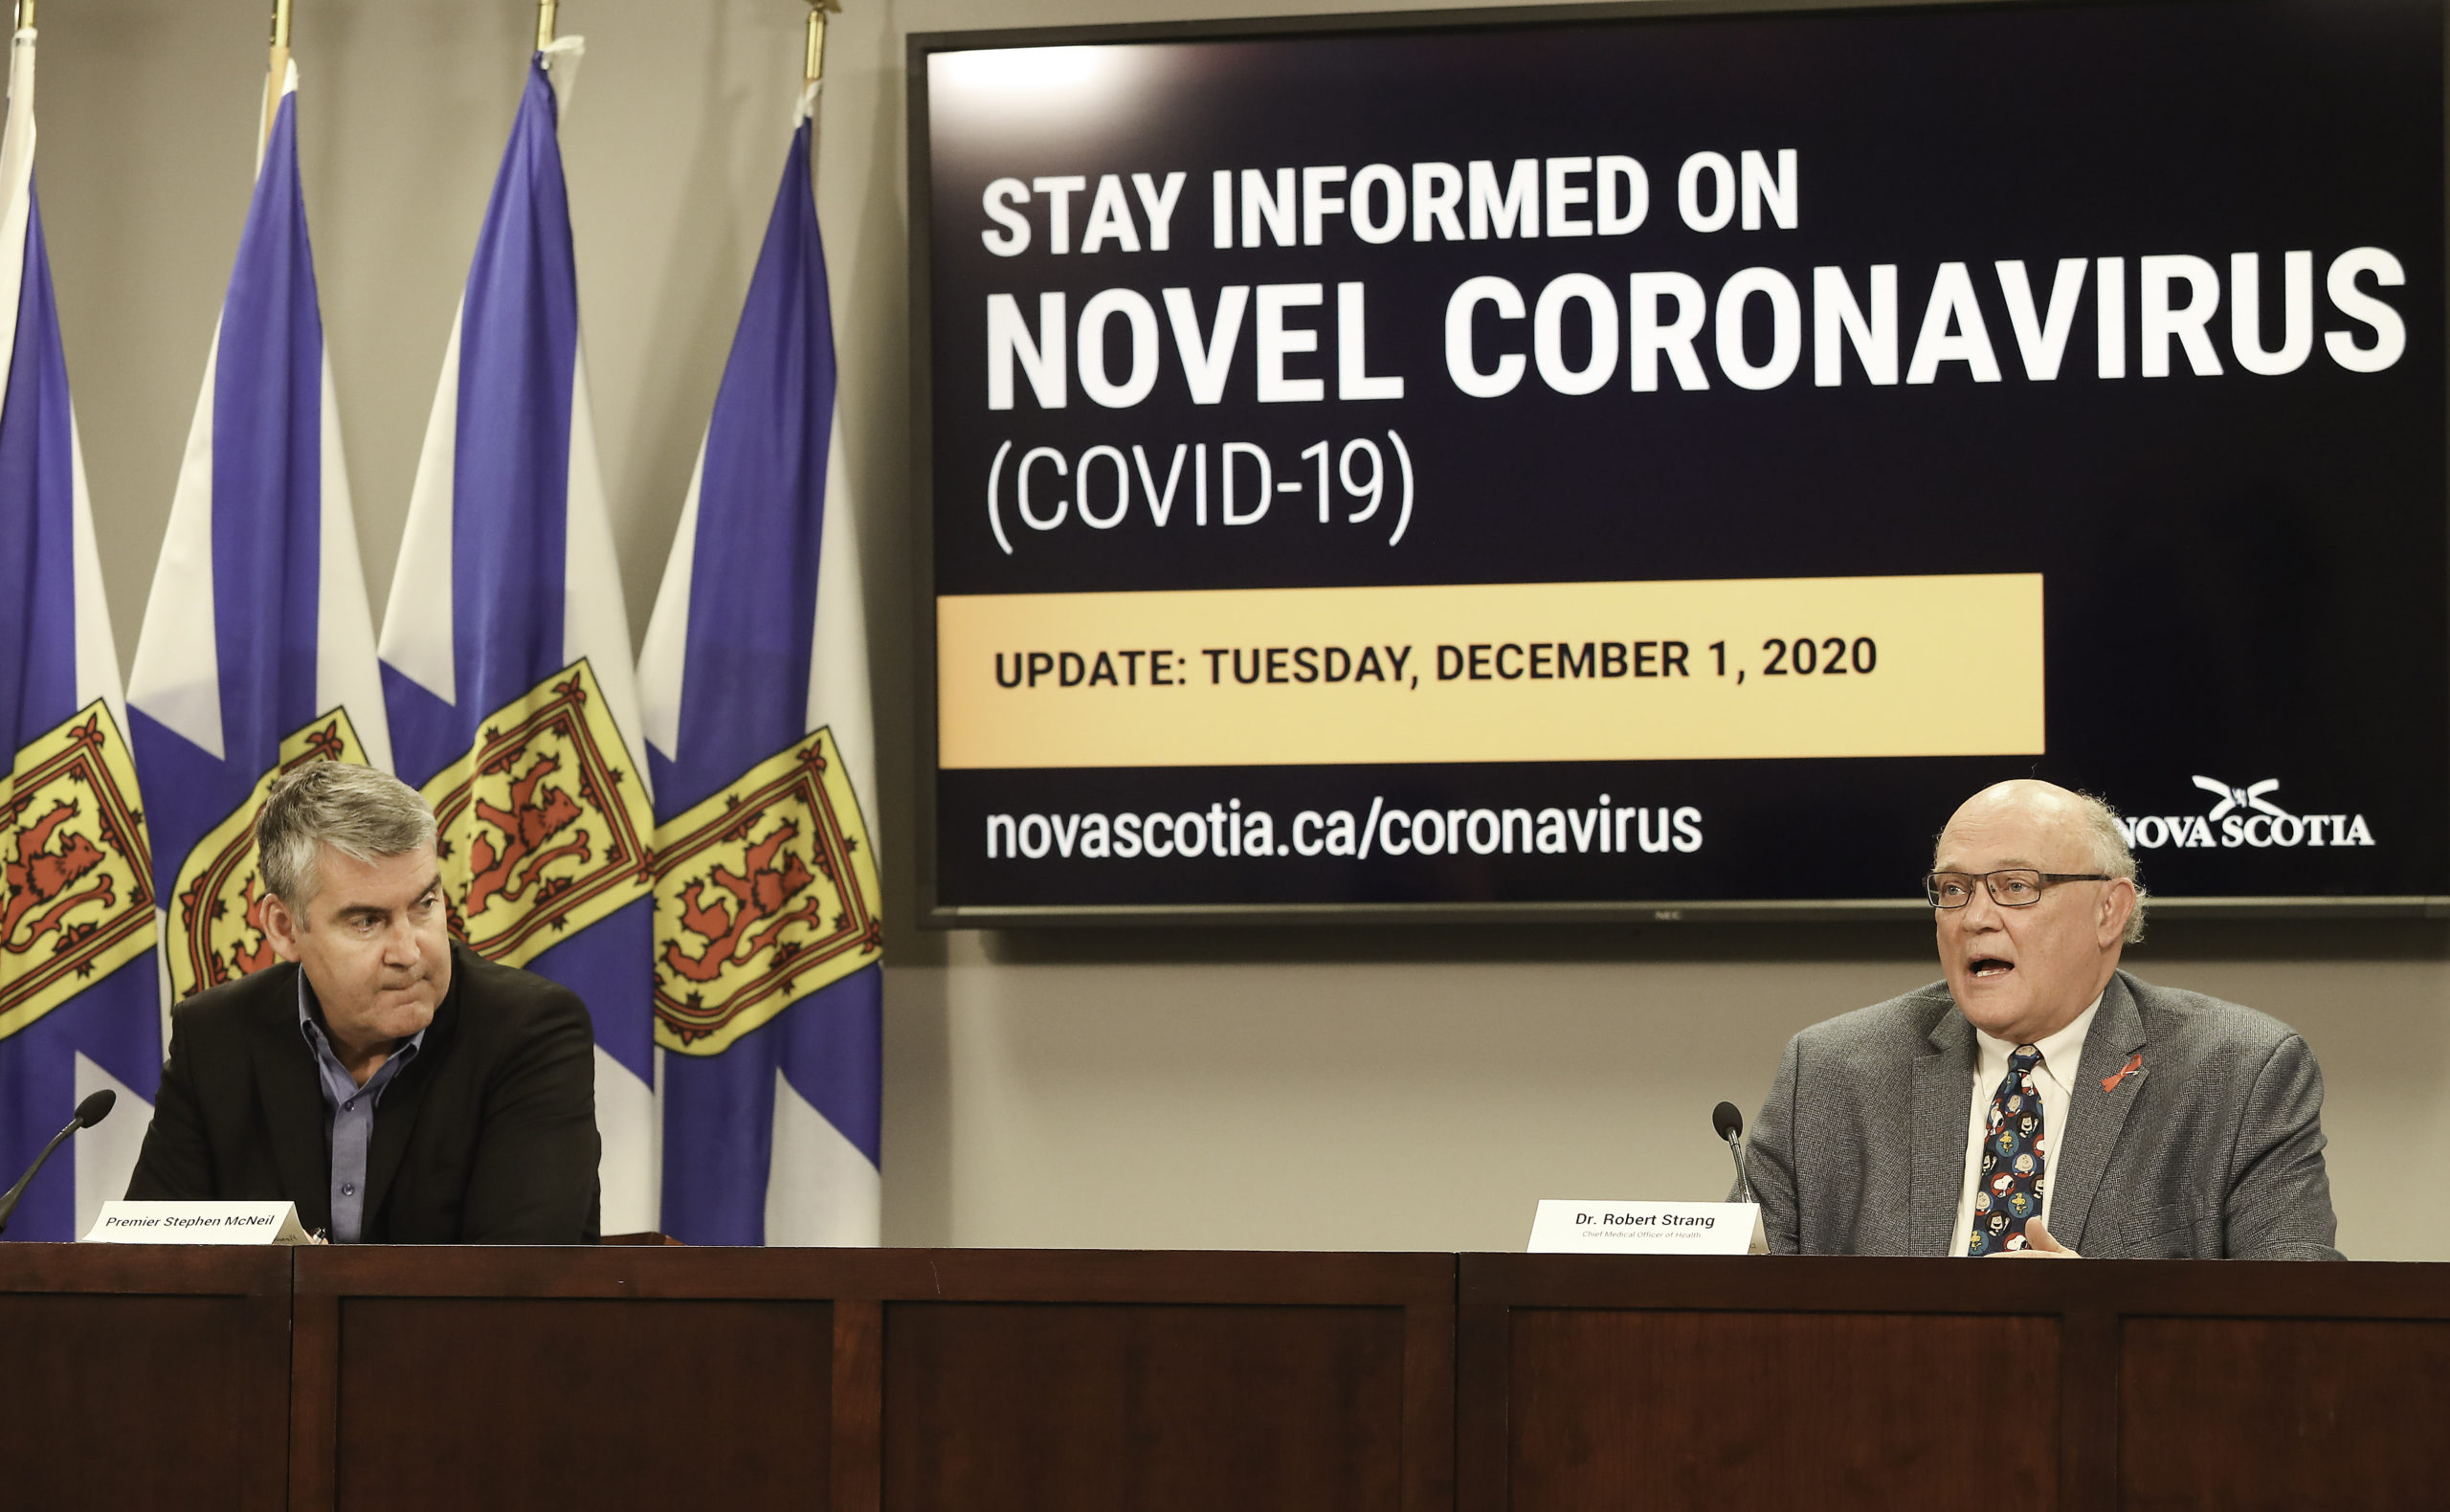 Premier Stephen McNeil and Chief Medical Officer of Health Dr. Robert Strang speak at Tuesday's COVID-19 update.